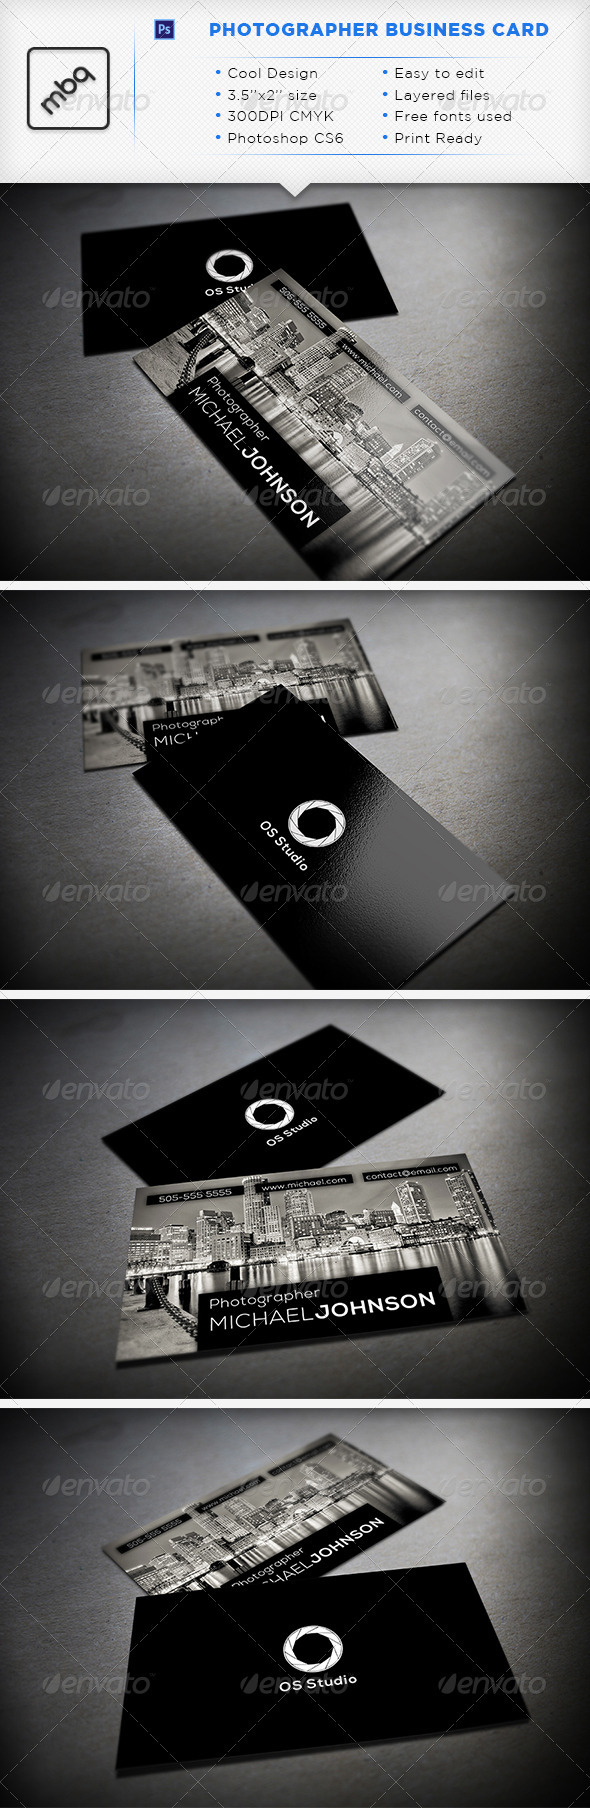 GraphicRiver Photographer Business Card 3314674